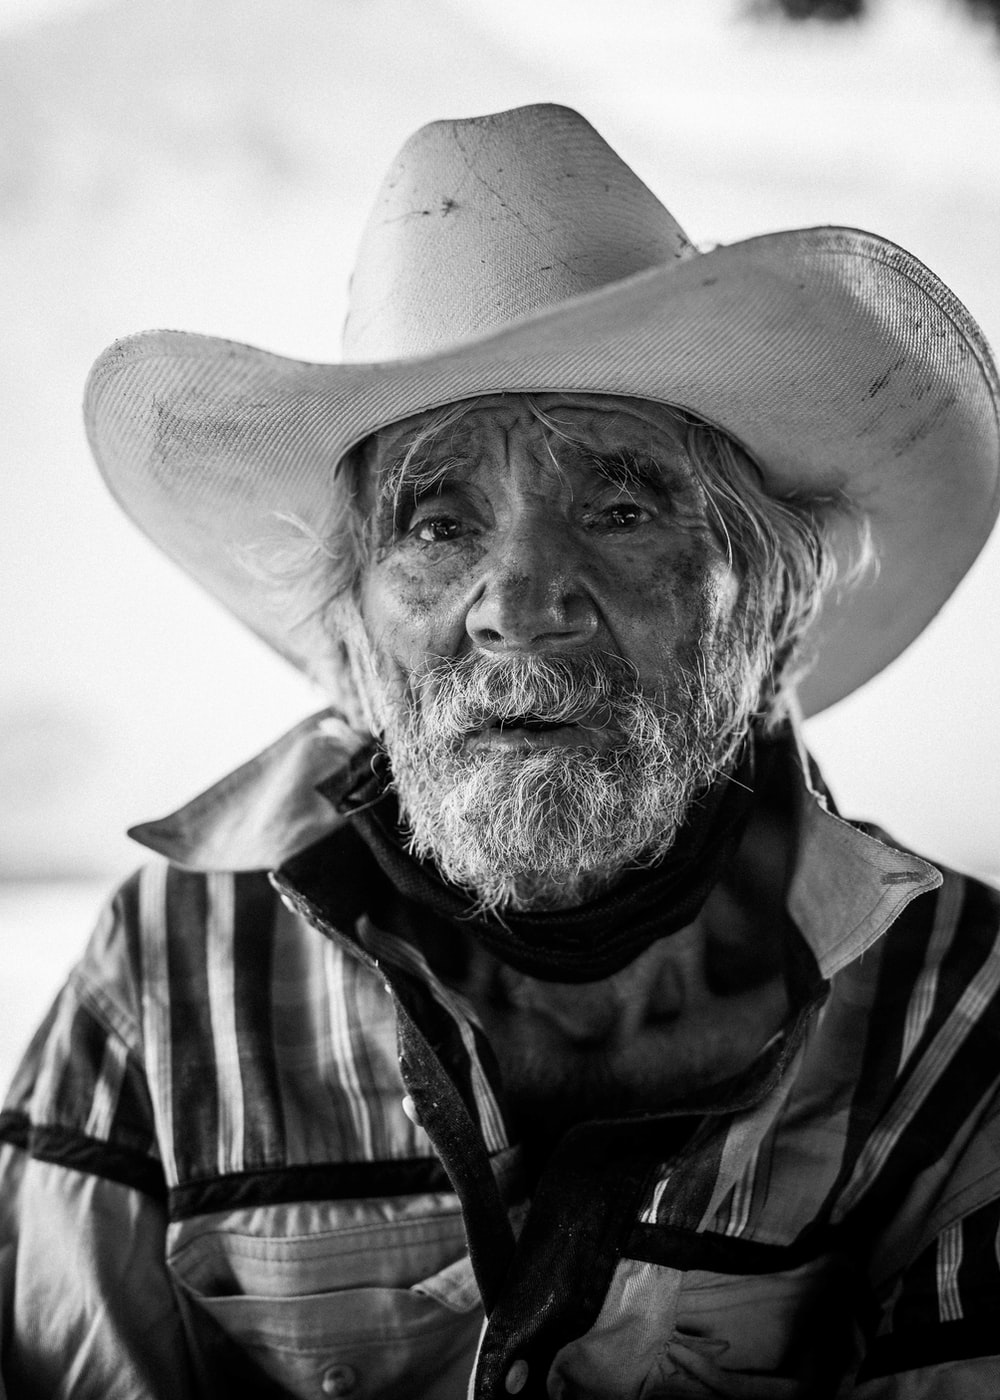 man in cowboy hat in grayscale photography